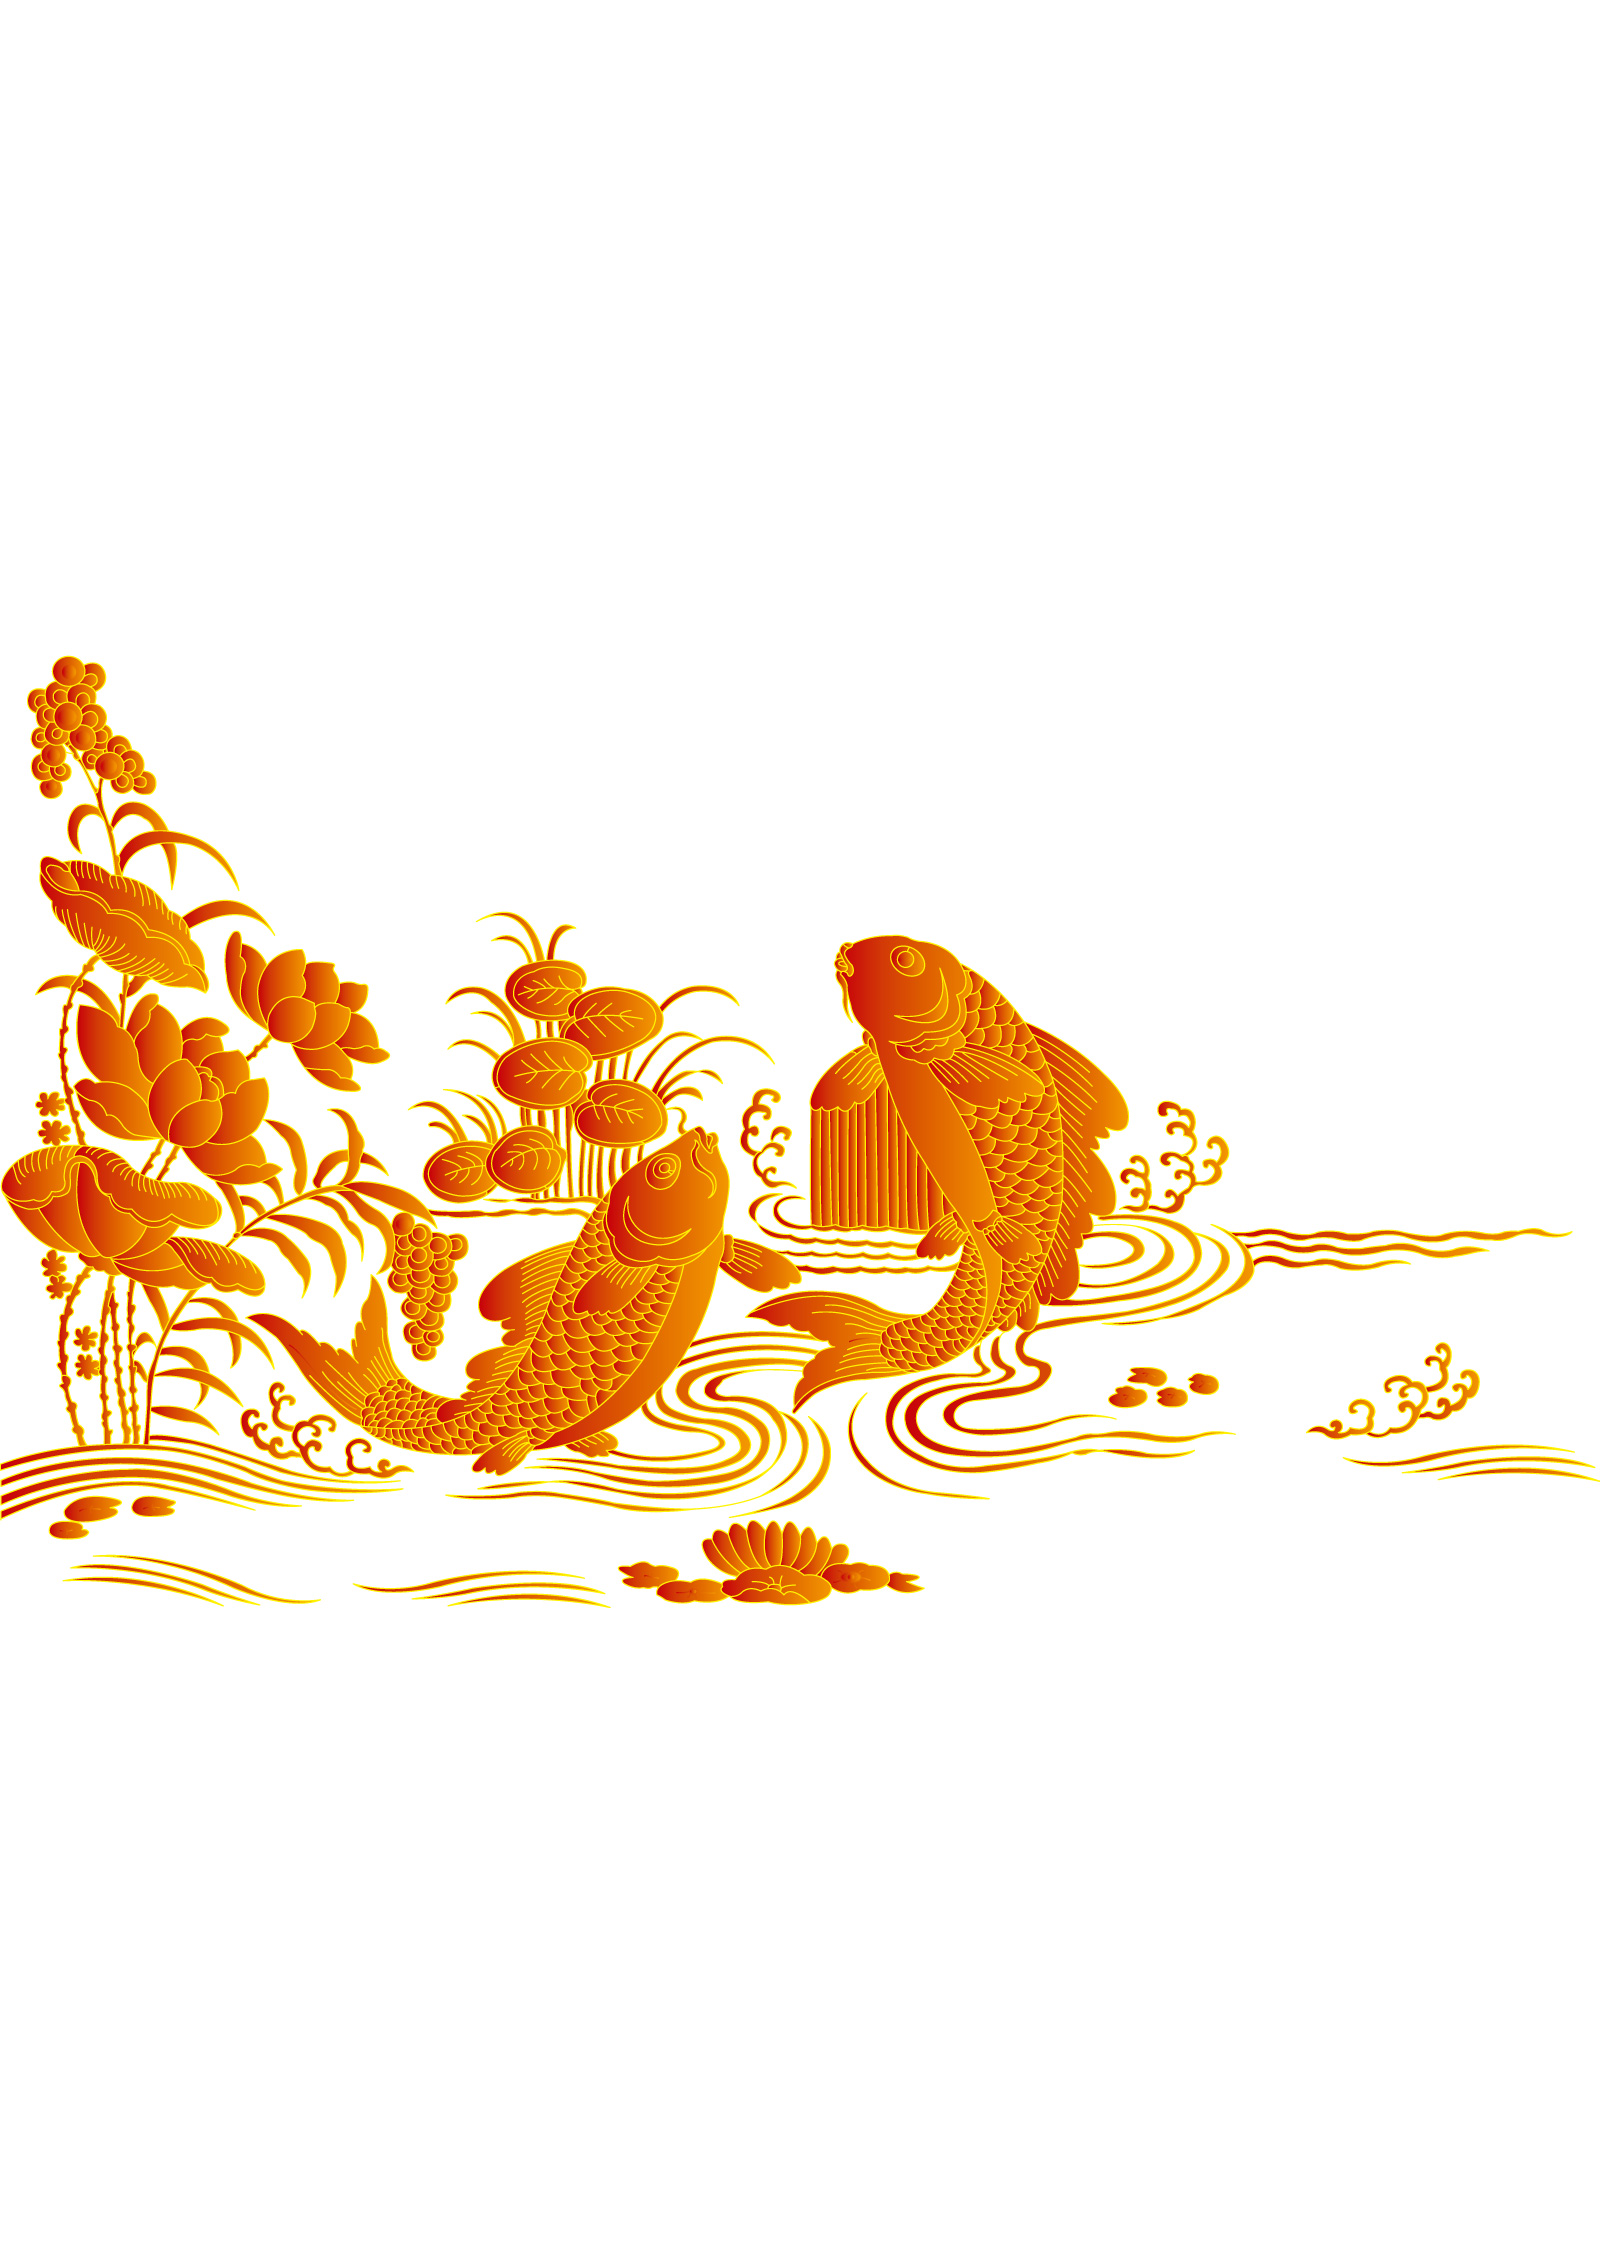 chinesefontdesign.com 2017 03 31 07 49 59 Chinese traditional carp to leap onto the goal auspicious vector  Illustrations Vectors AI ESP Free Download Chinese carp ai